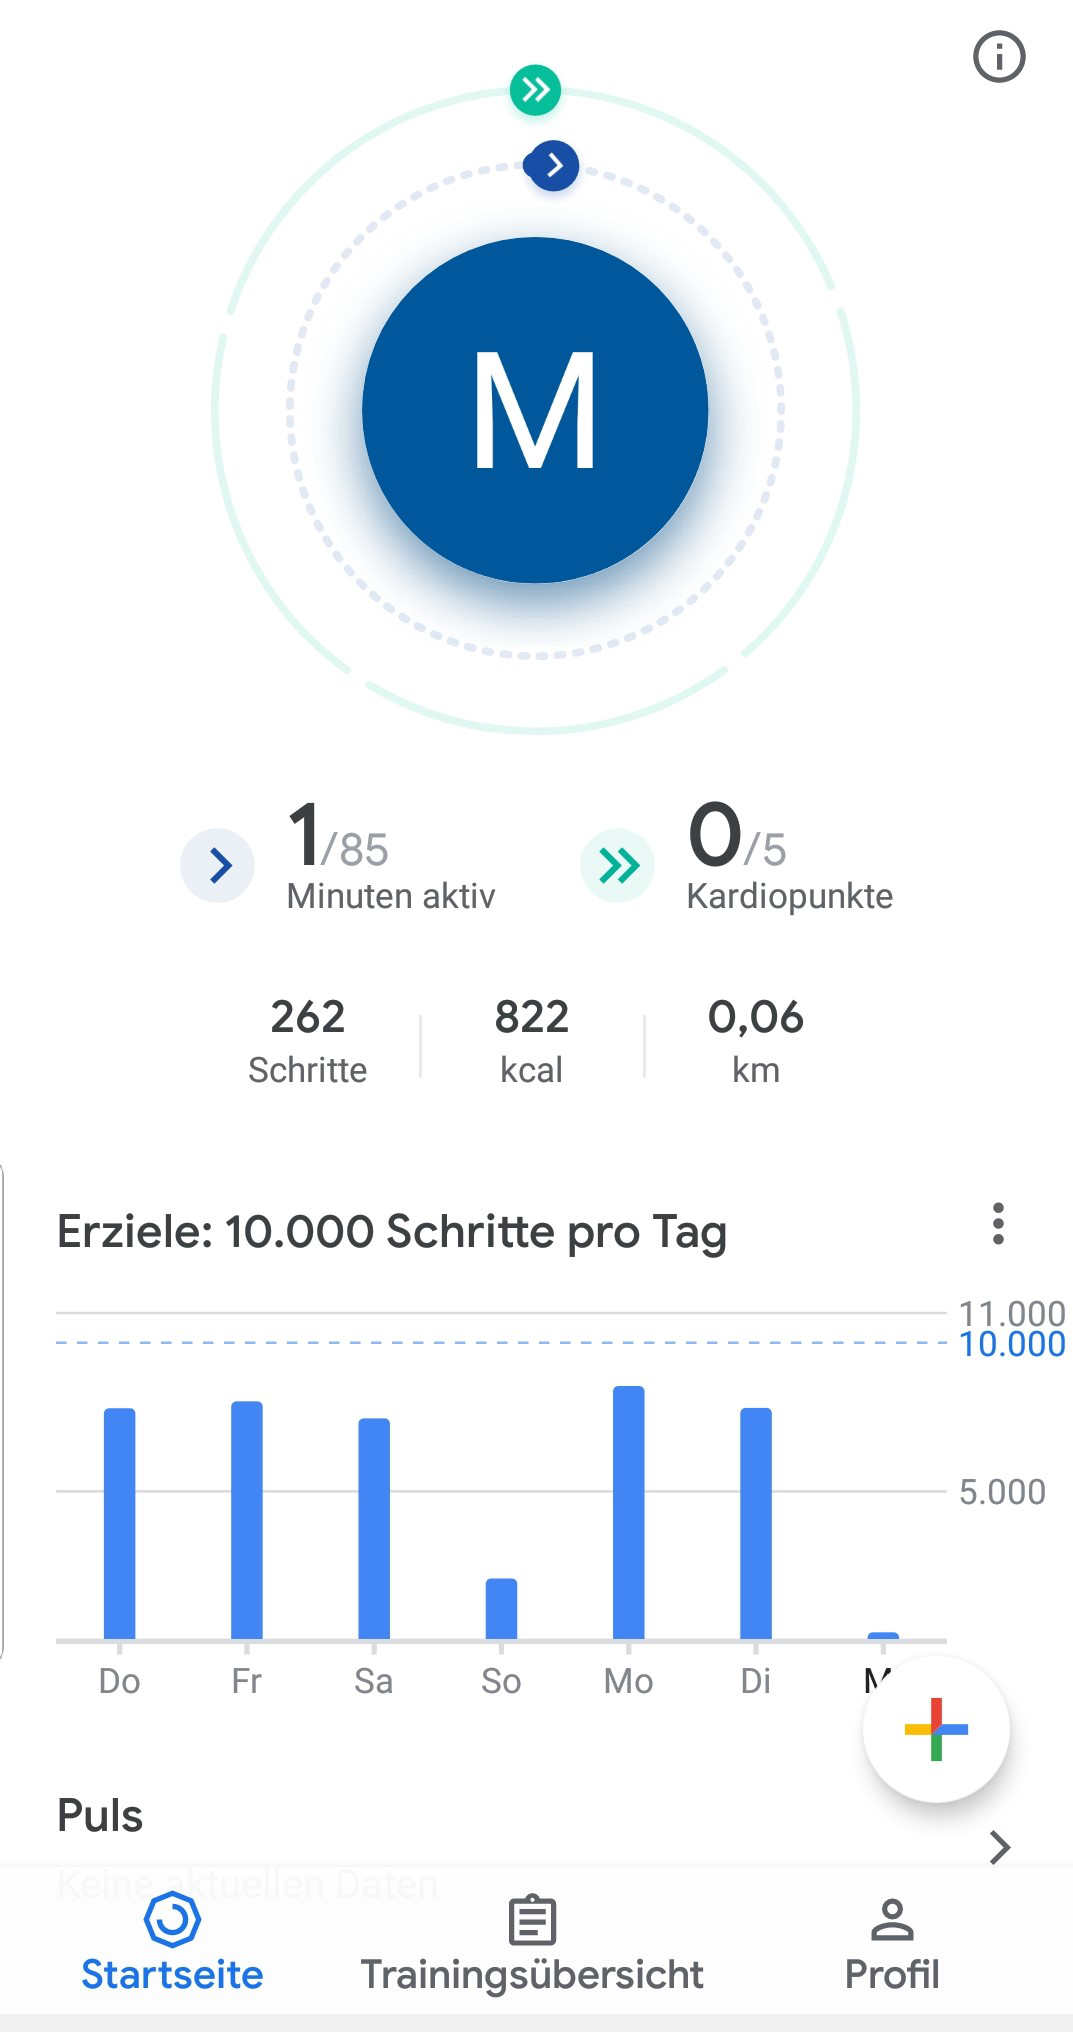 https://www.win-tipps-tweaks.de/cms/images/stories/news/aktuelles/google_Fit121218_logo.png